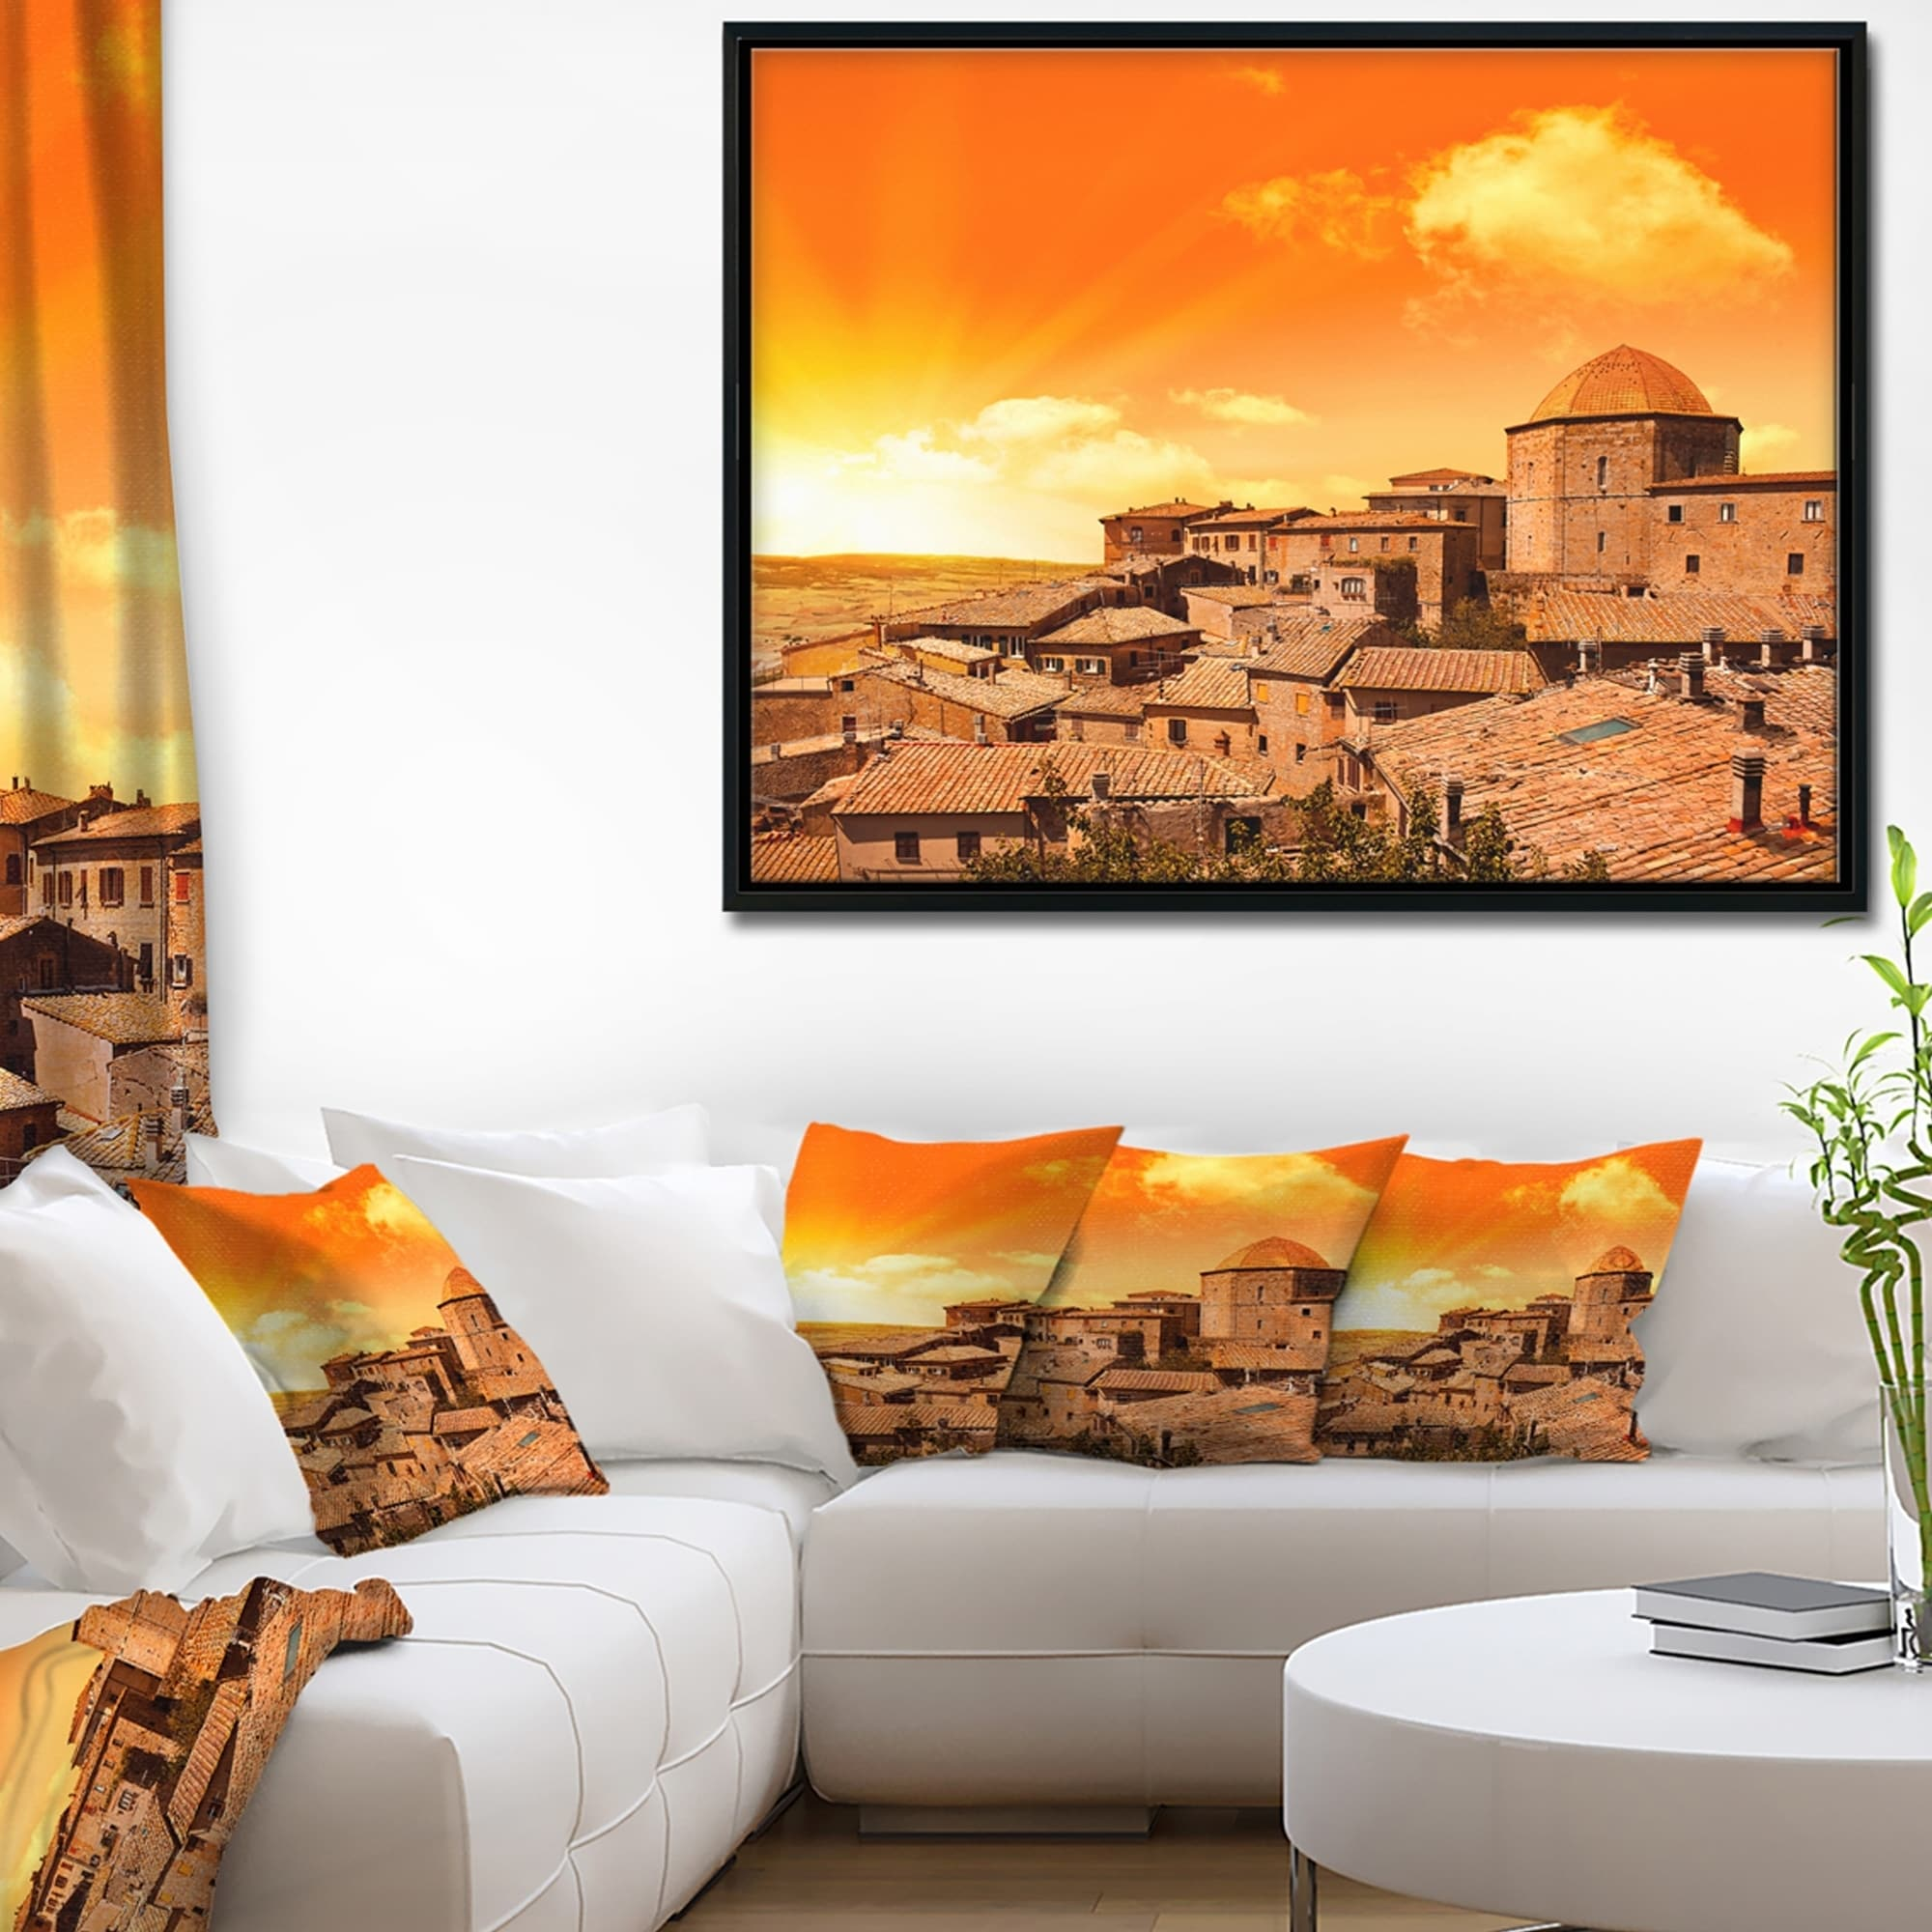 Tuscany Landscape Abstract Picture PANORAMA CANVAS WALL ART Print Orange